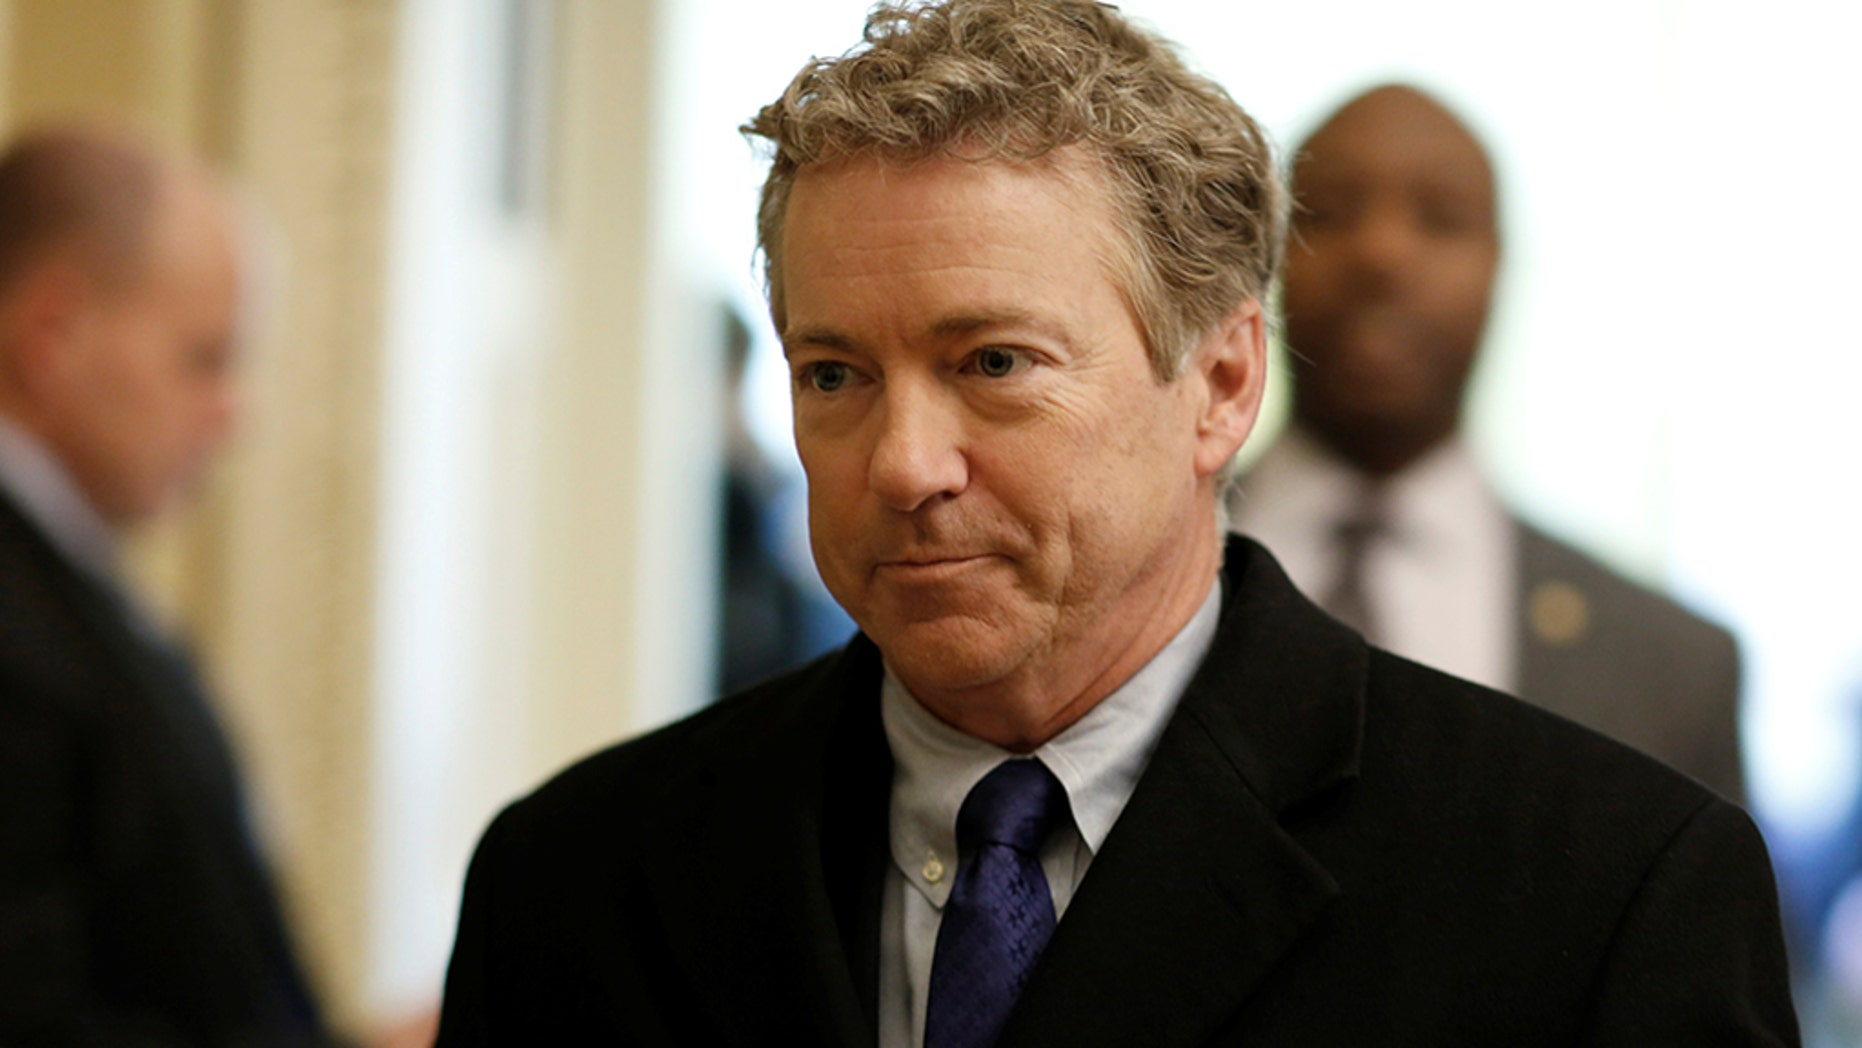 Sen. Rand Paul awarded over $580G after he was attacked by neighbor